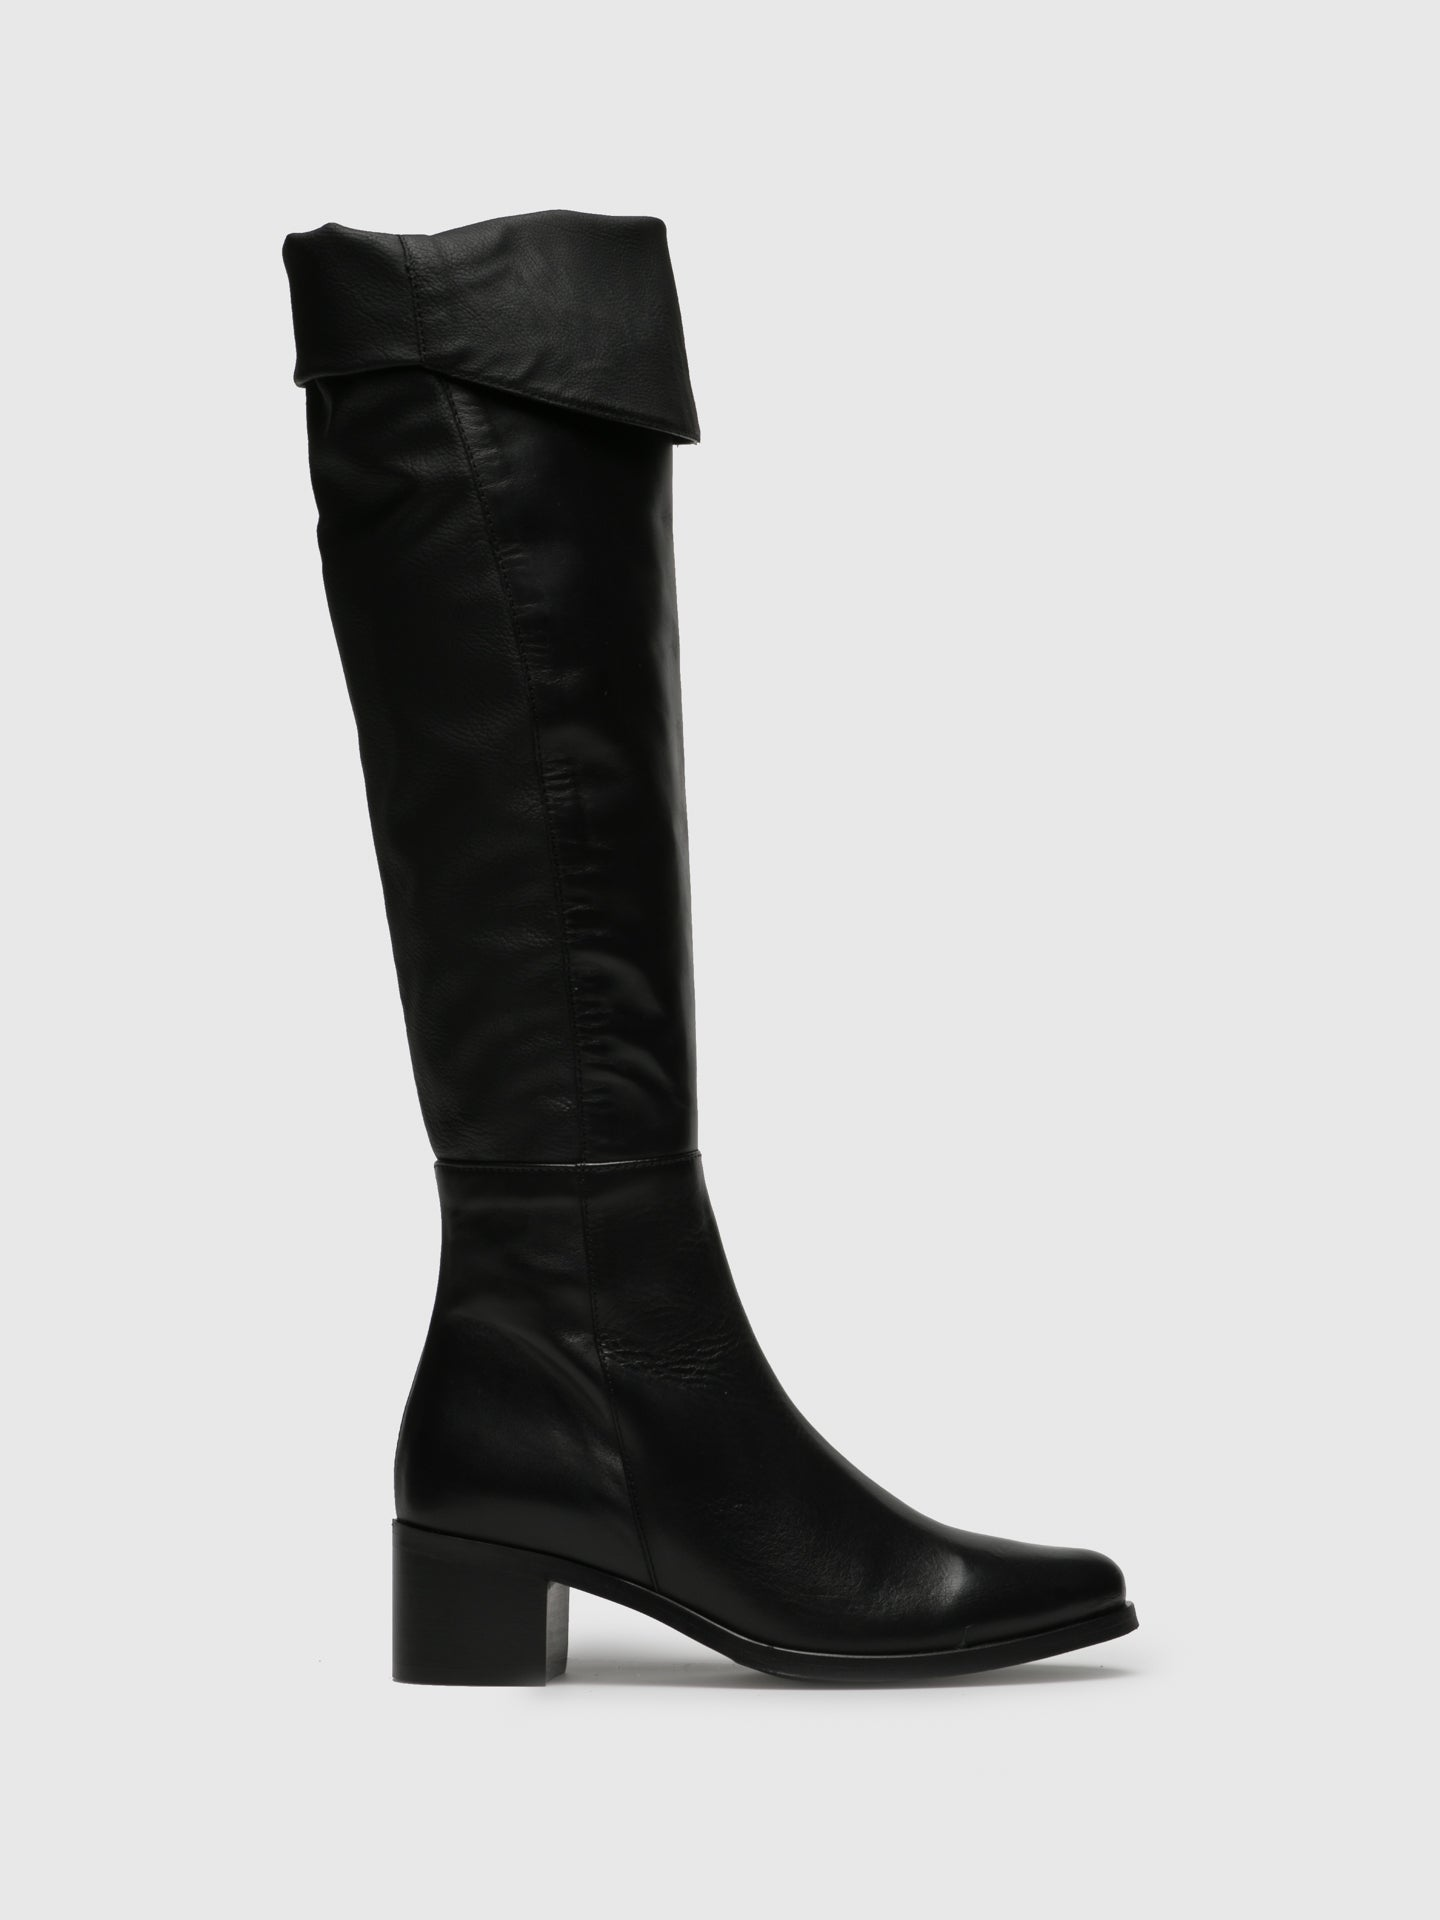 PintoDiBlu Black Leather Over the Knee